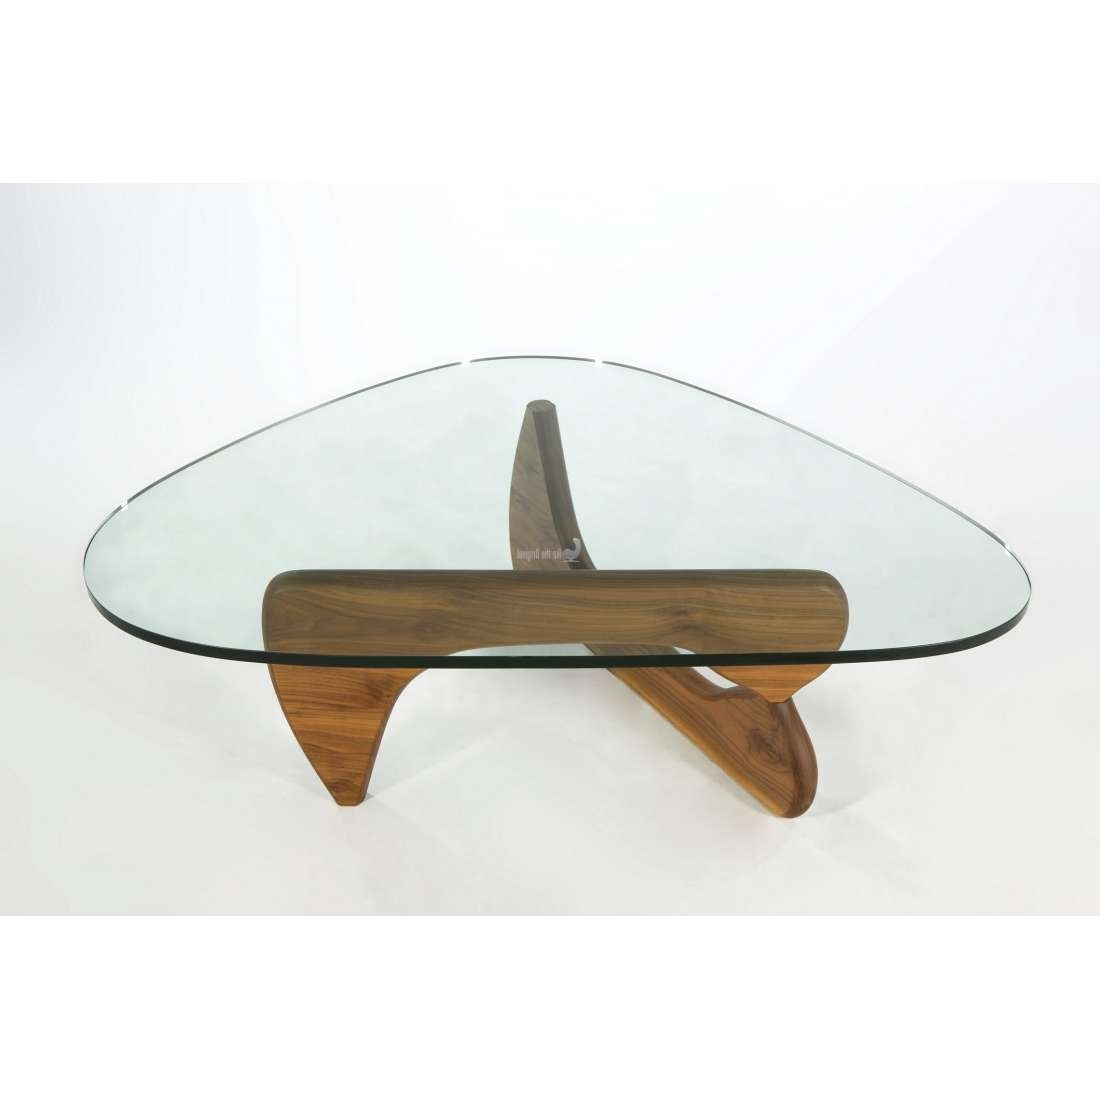 The Creative Small Glass Coffee Table – Used Glass Coffee Table With Regard To 2017 Small Glass Coffee Tables (View 17 of 20)